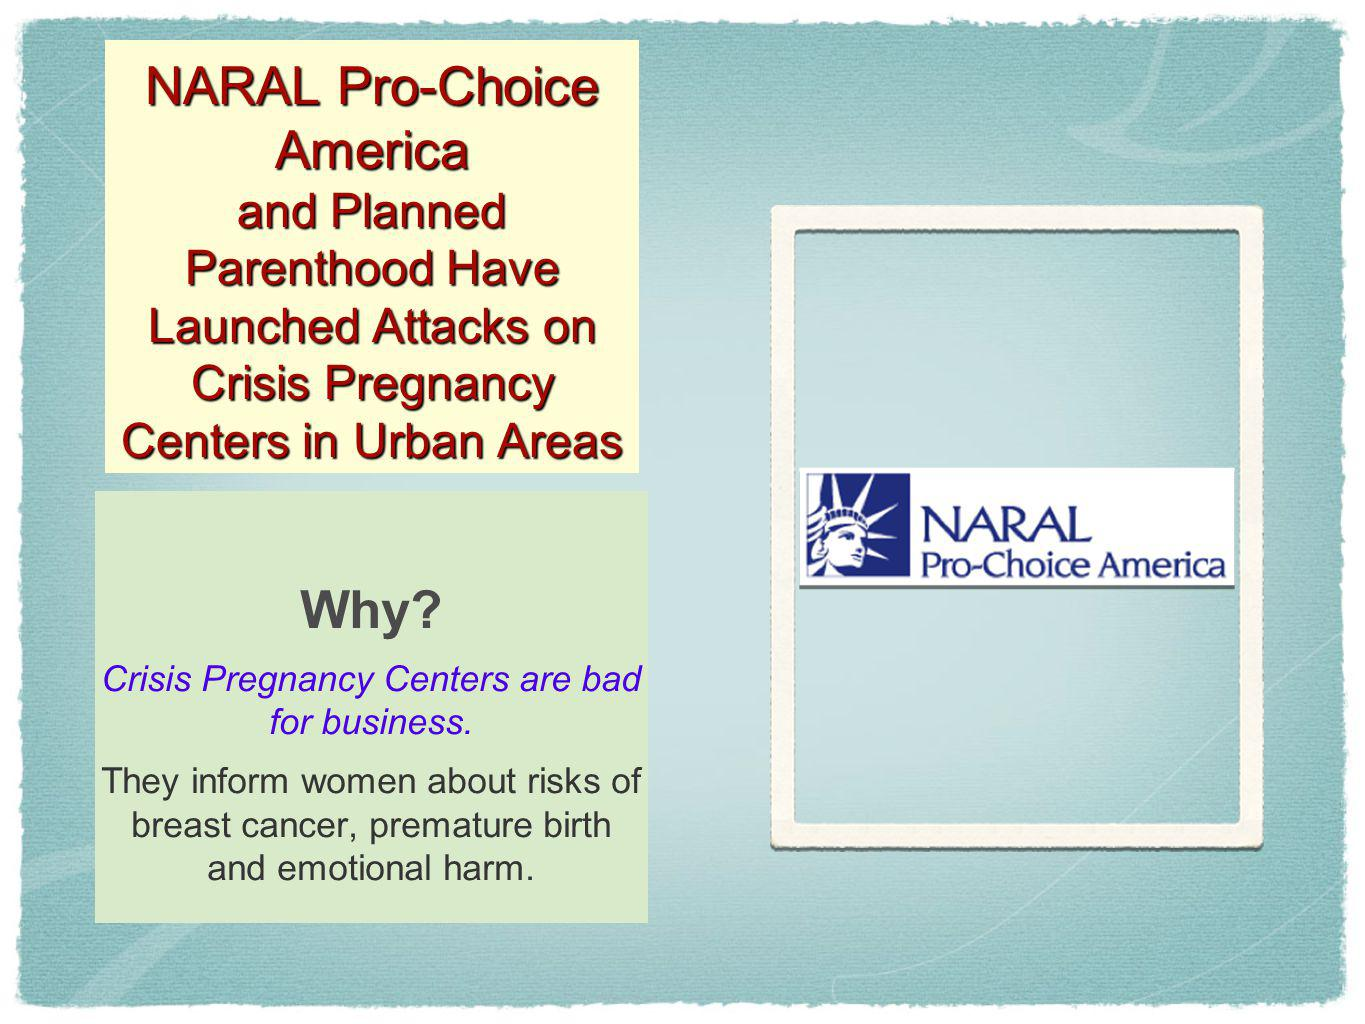 Crisis Pregnancy Centers are bad for business.